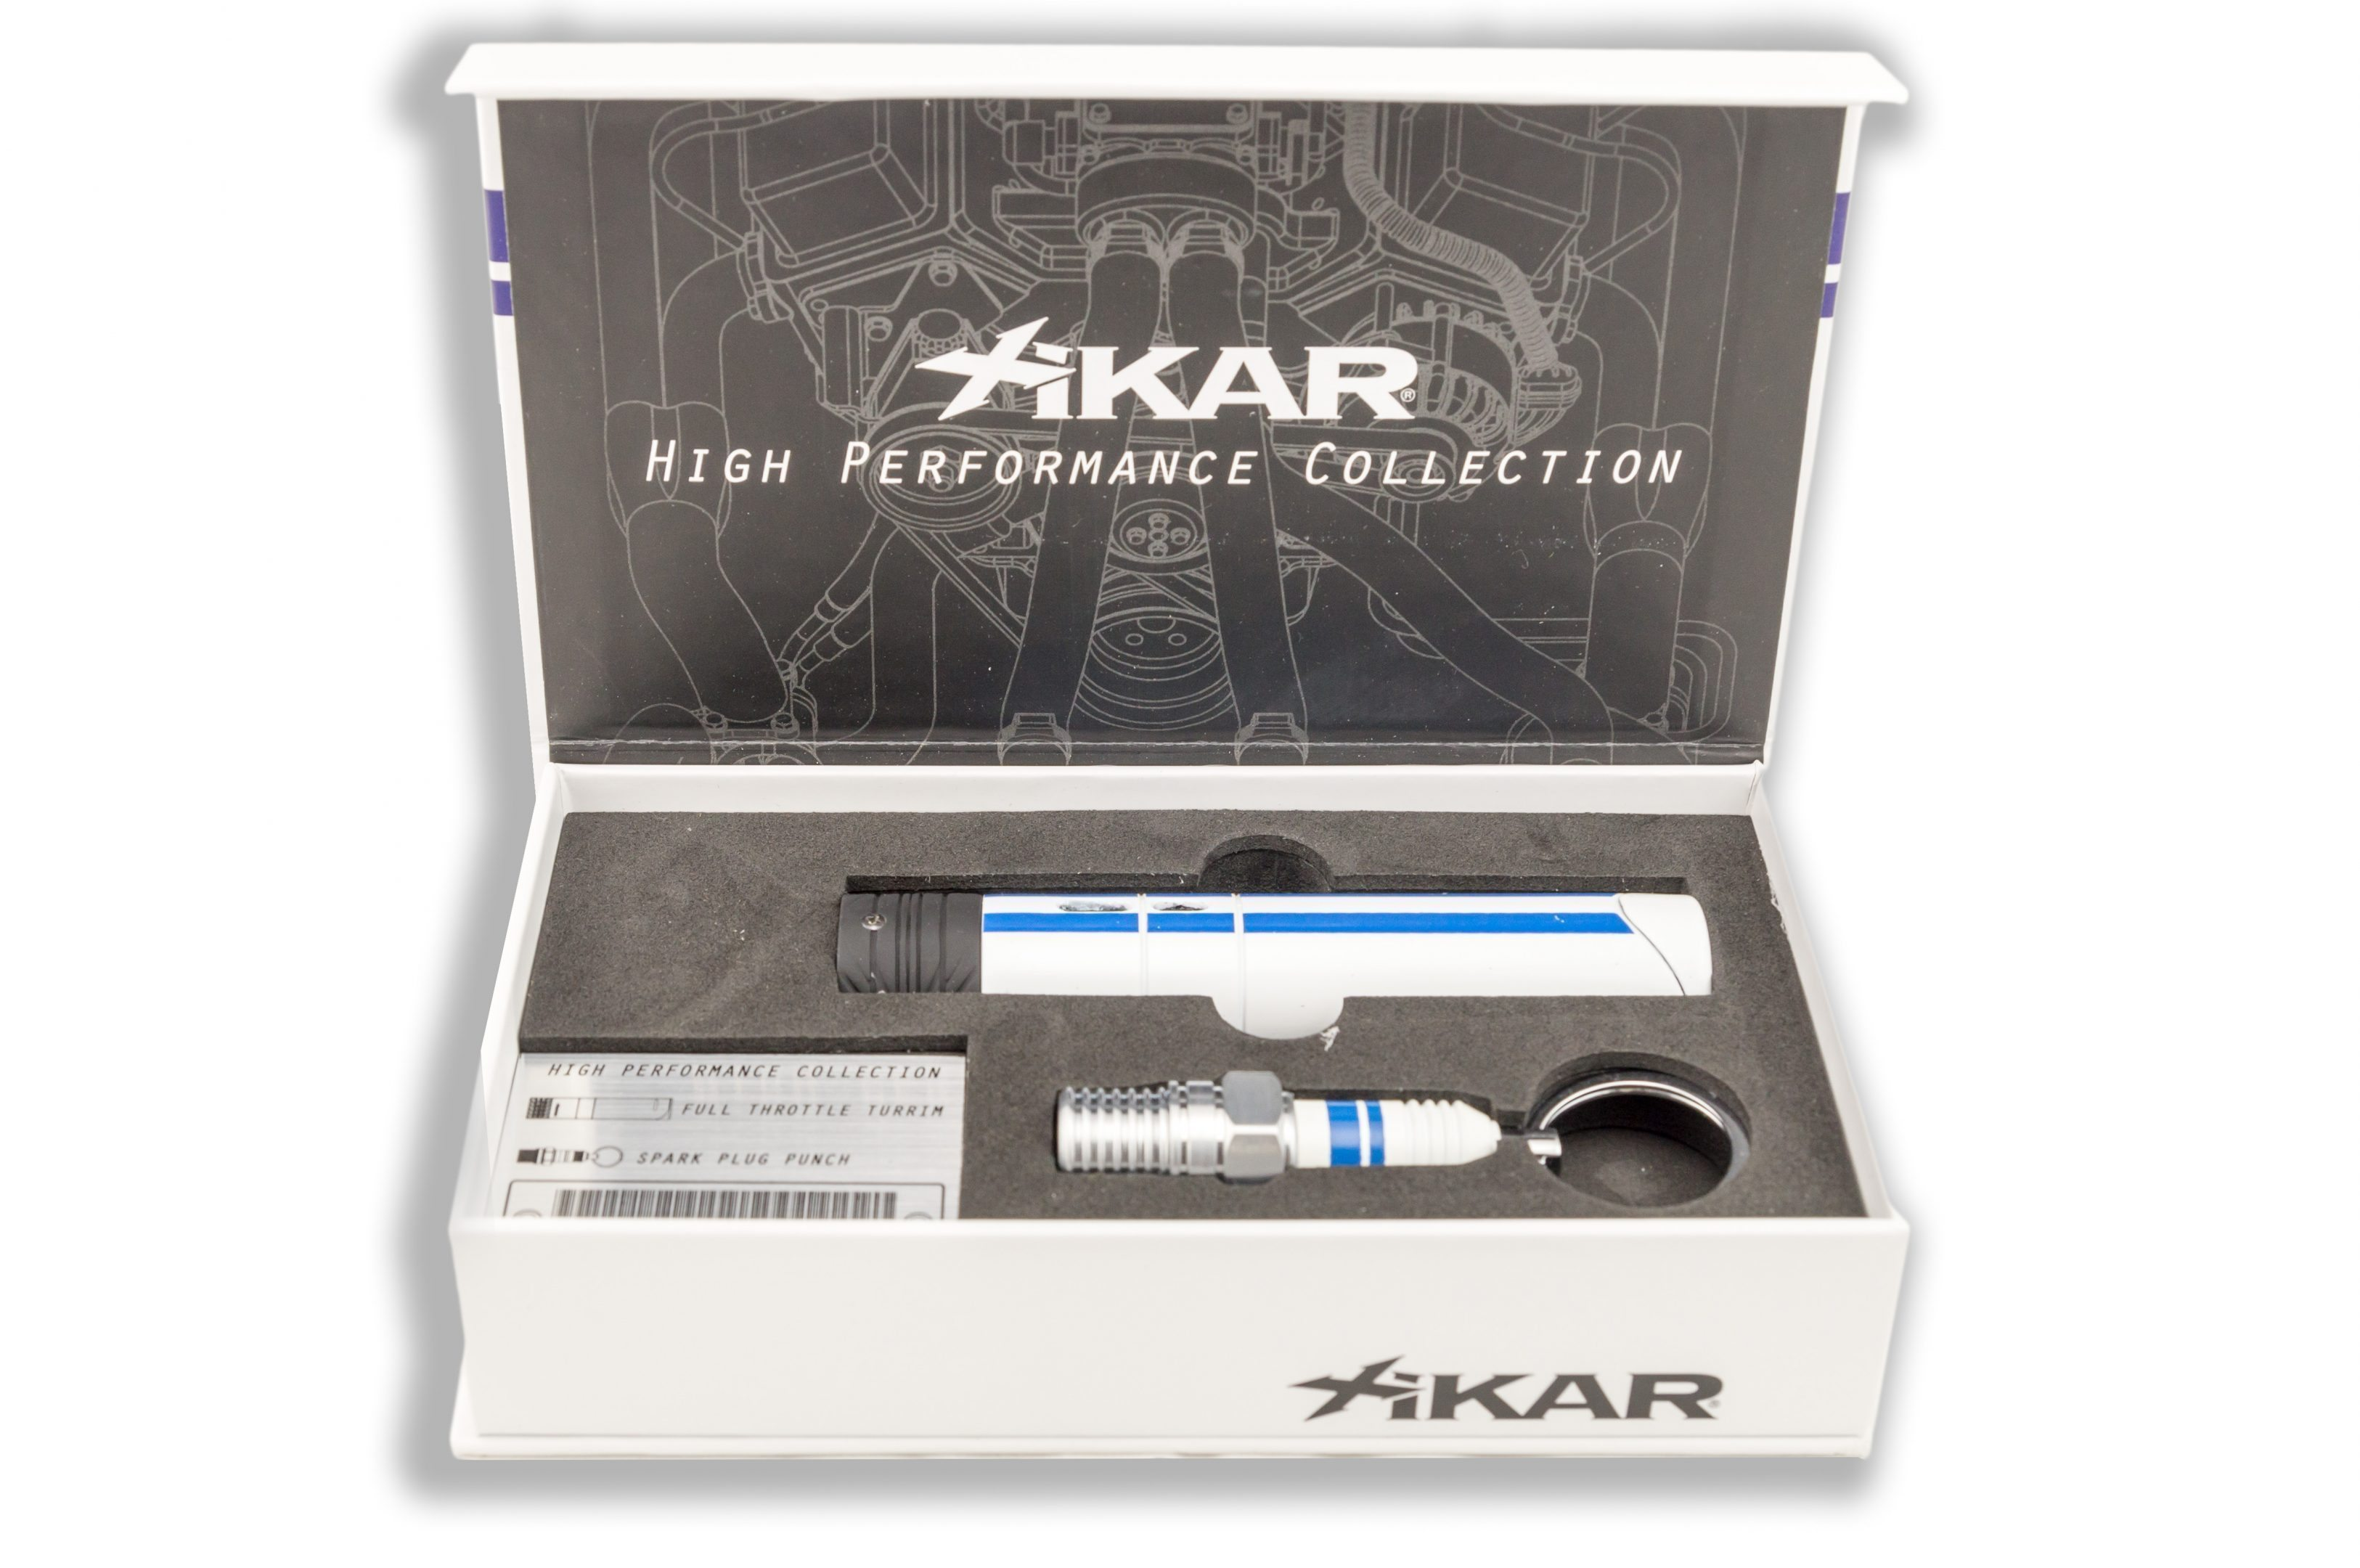 Accessory Review: Xikar | High Performance Gift Set